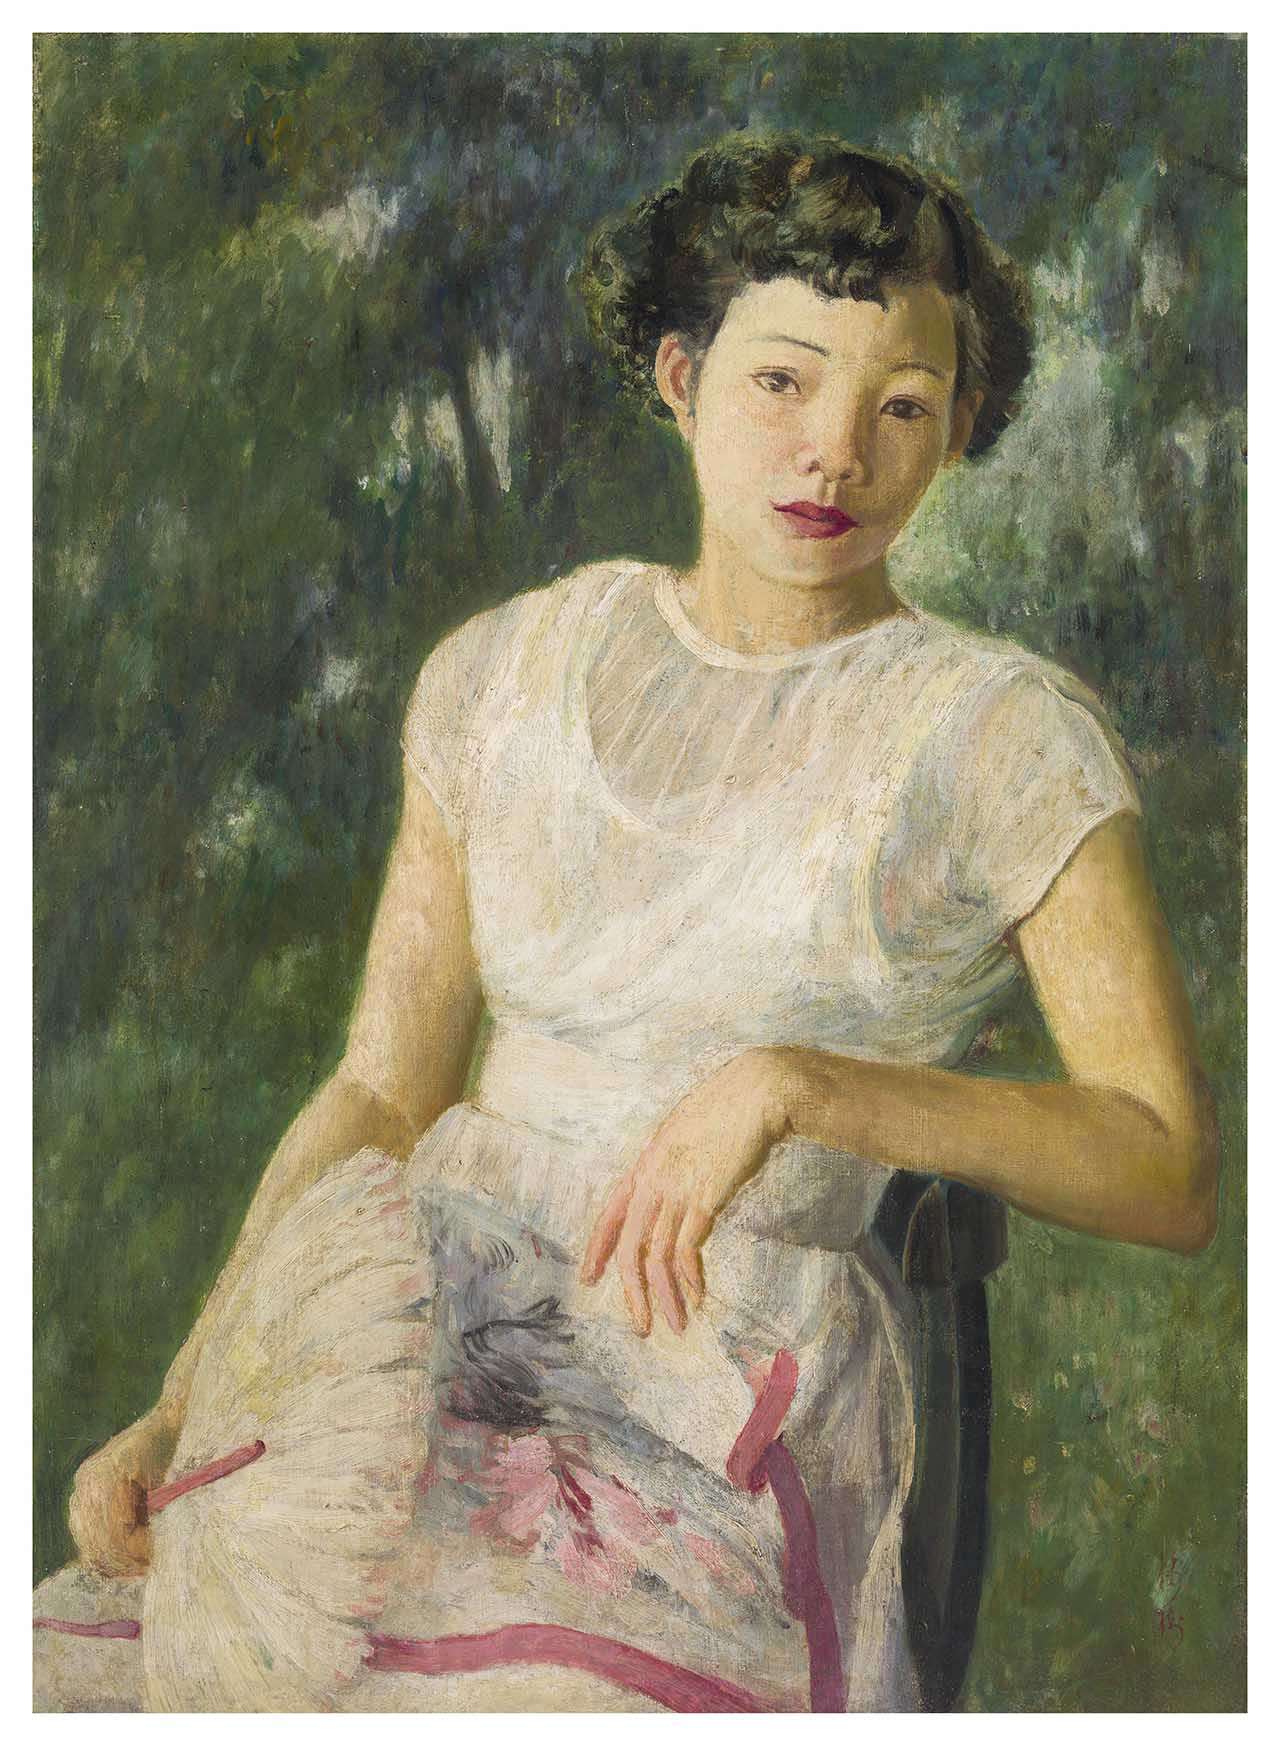 Lady in White Dress Oil on canvas 72.5x60.5cm